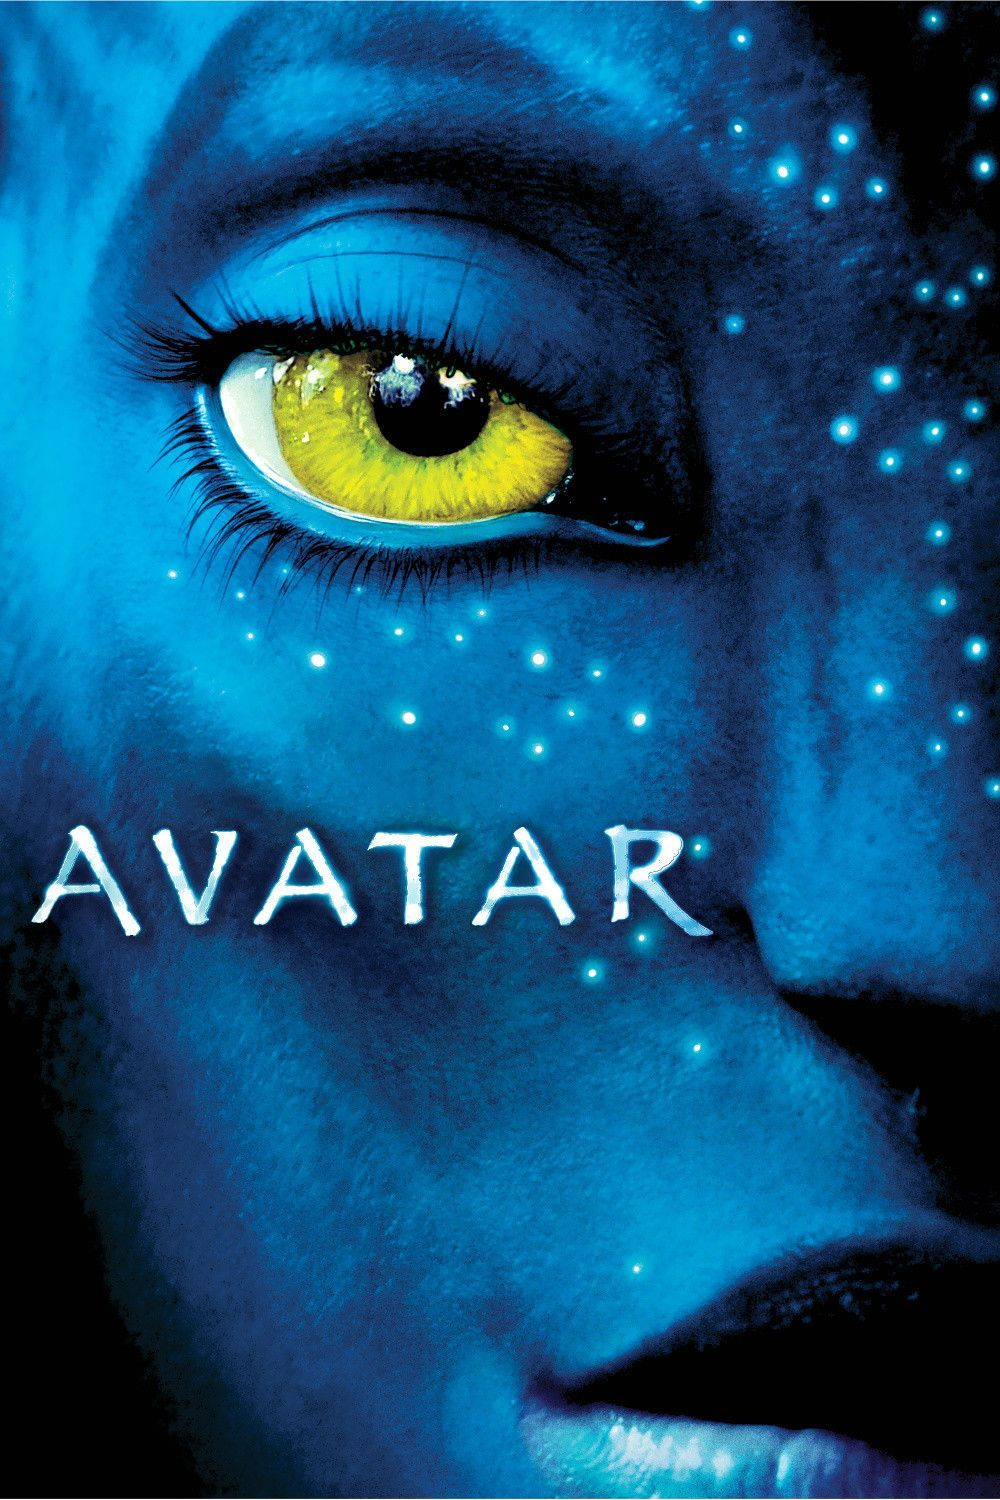 Avatar 2009 Highest Grossing Film Of All Time Without Inflation With Inflation It S 2 Avatar Filme Completo Filme Avatar Filmes De Fantasia